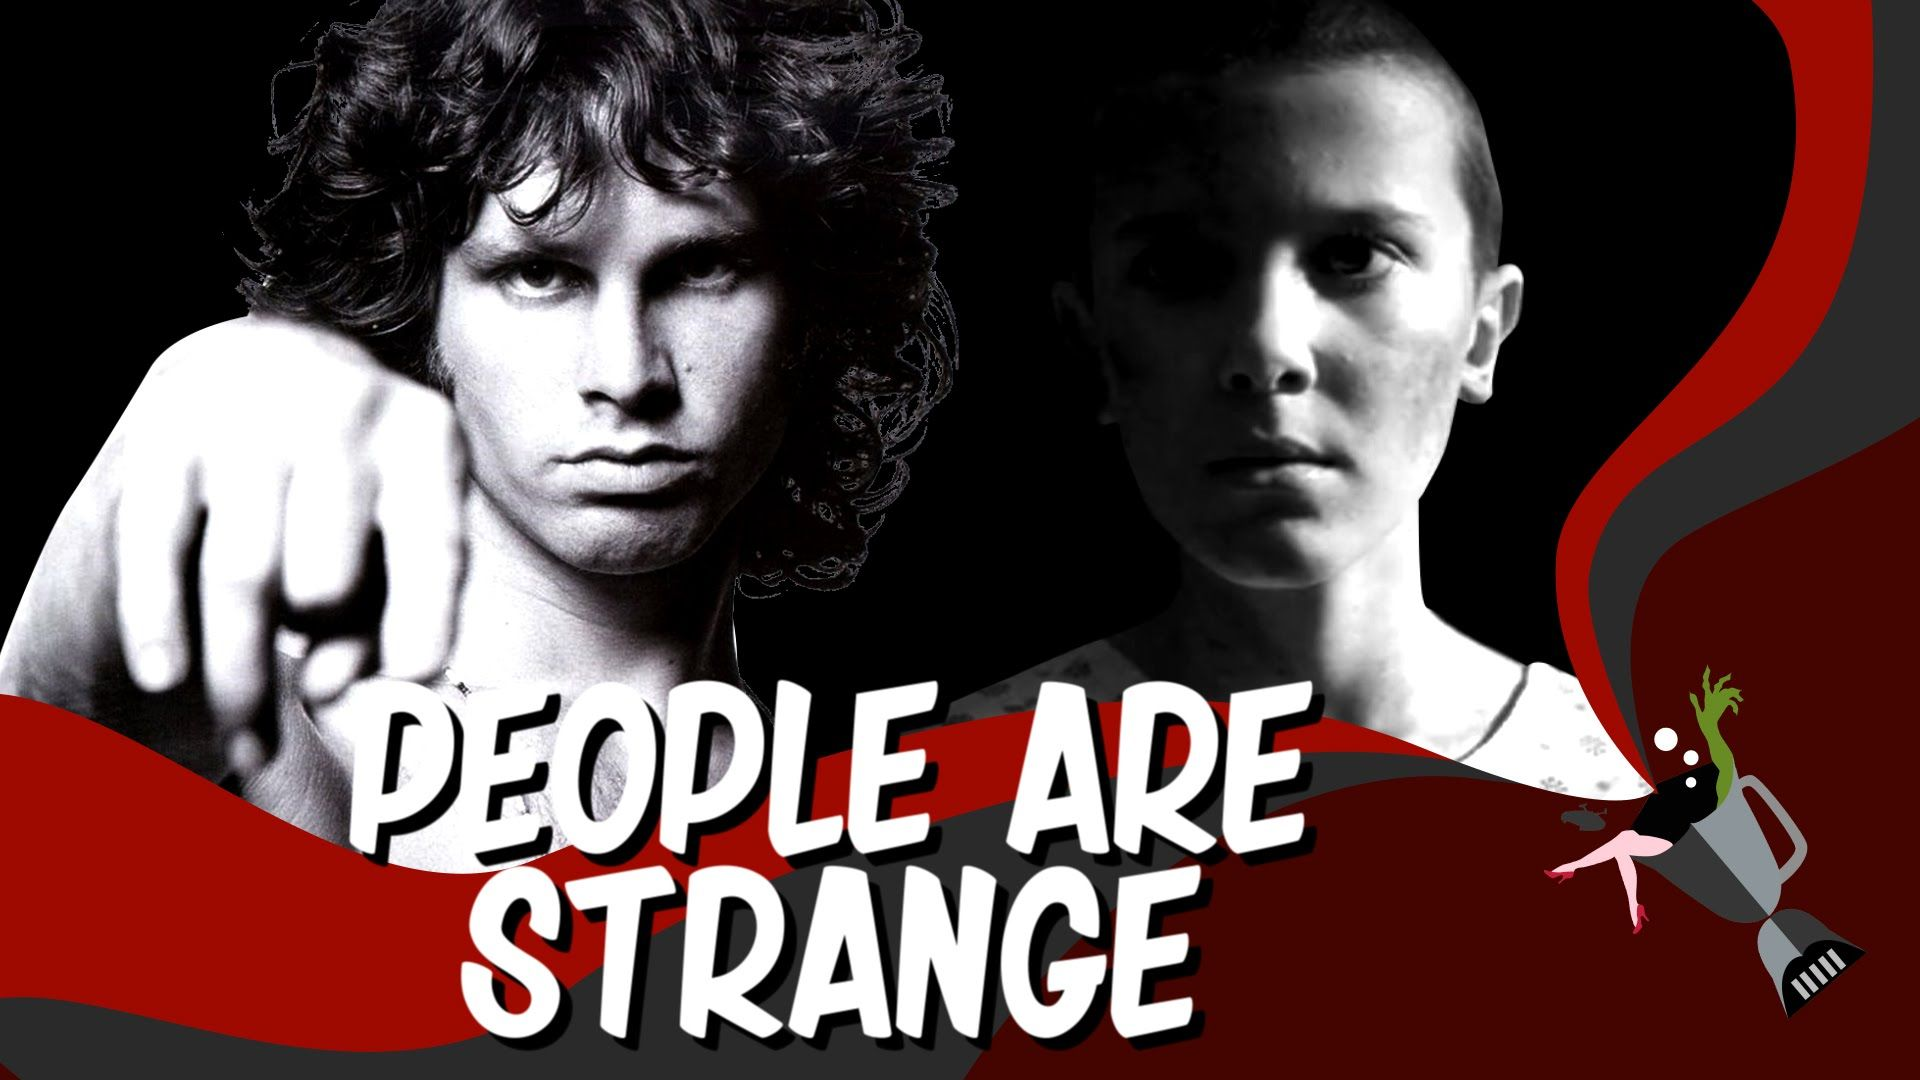 A Mashup of Stranger Things and The Doors Song \u0027People Are Strange\u0027  sc 1 st  Pinterest : the doors songs - pezcame.com